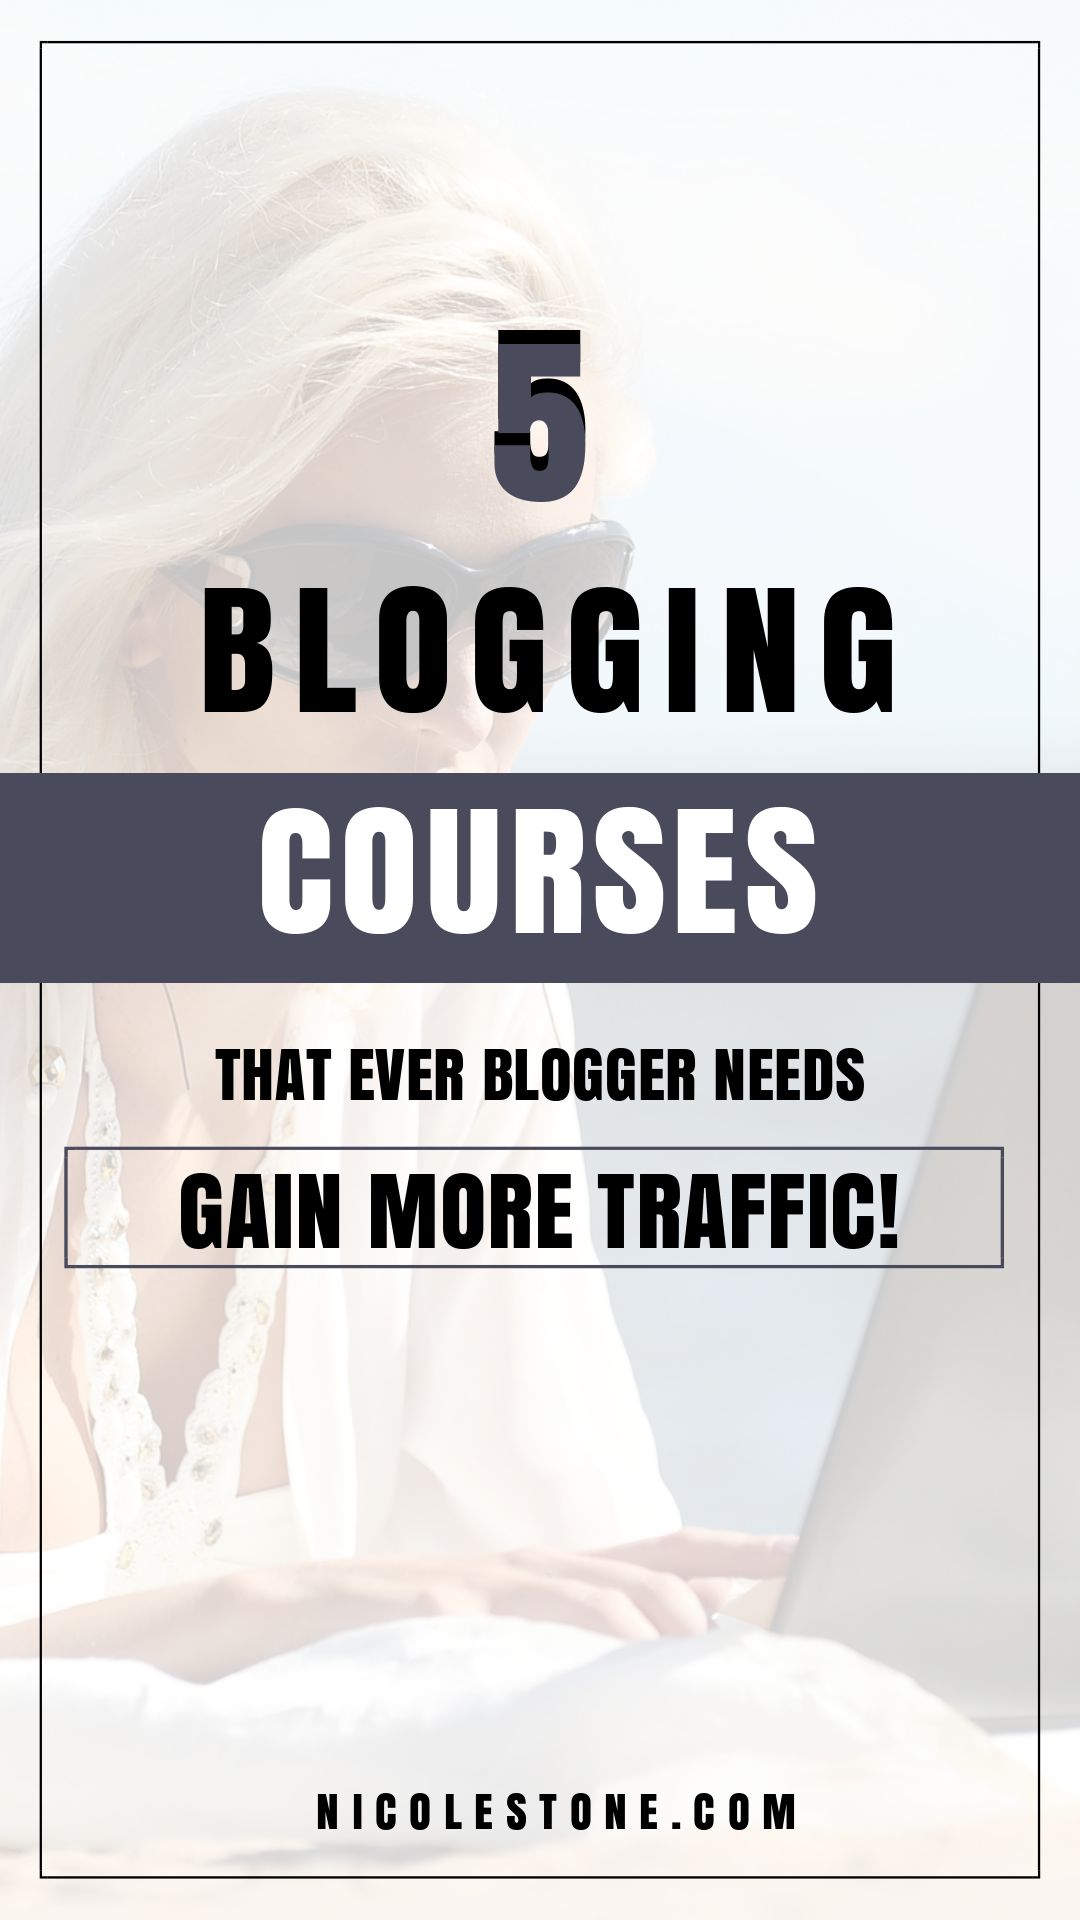 Looking for blogging courses to invest in? I've taken these 5 courses and highly recommend you do too! They revolutionized my blog traffic and income. #blogging #startablog #blogtips #traffictips #markeitng